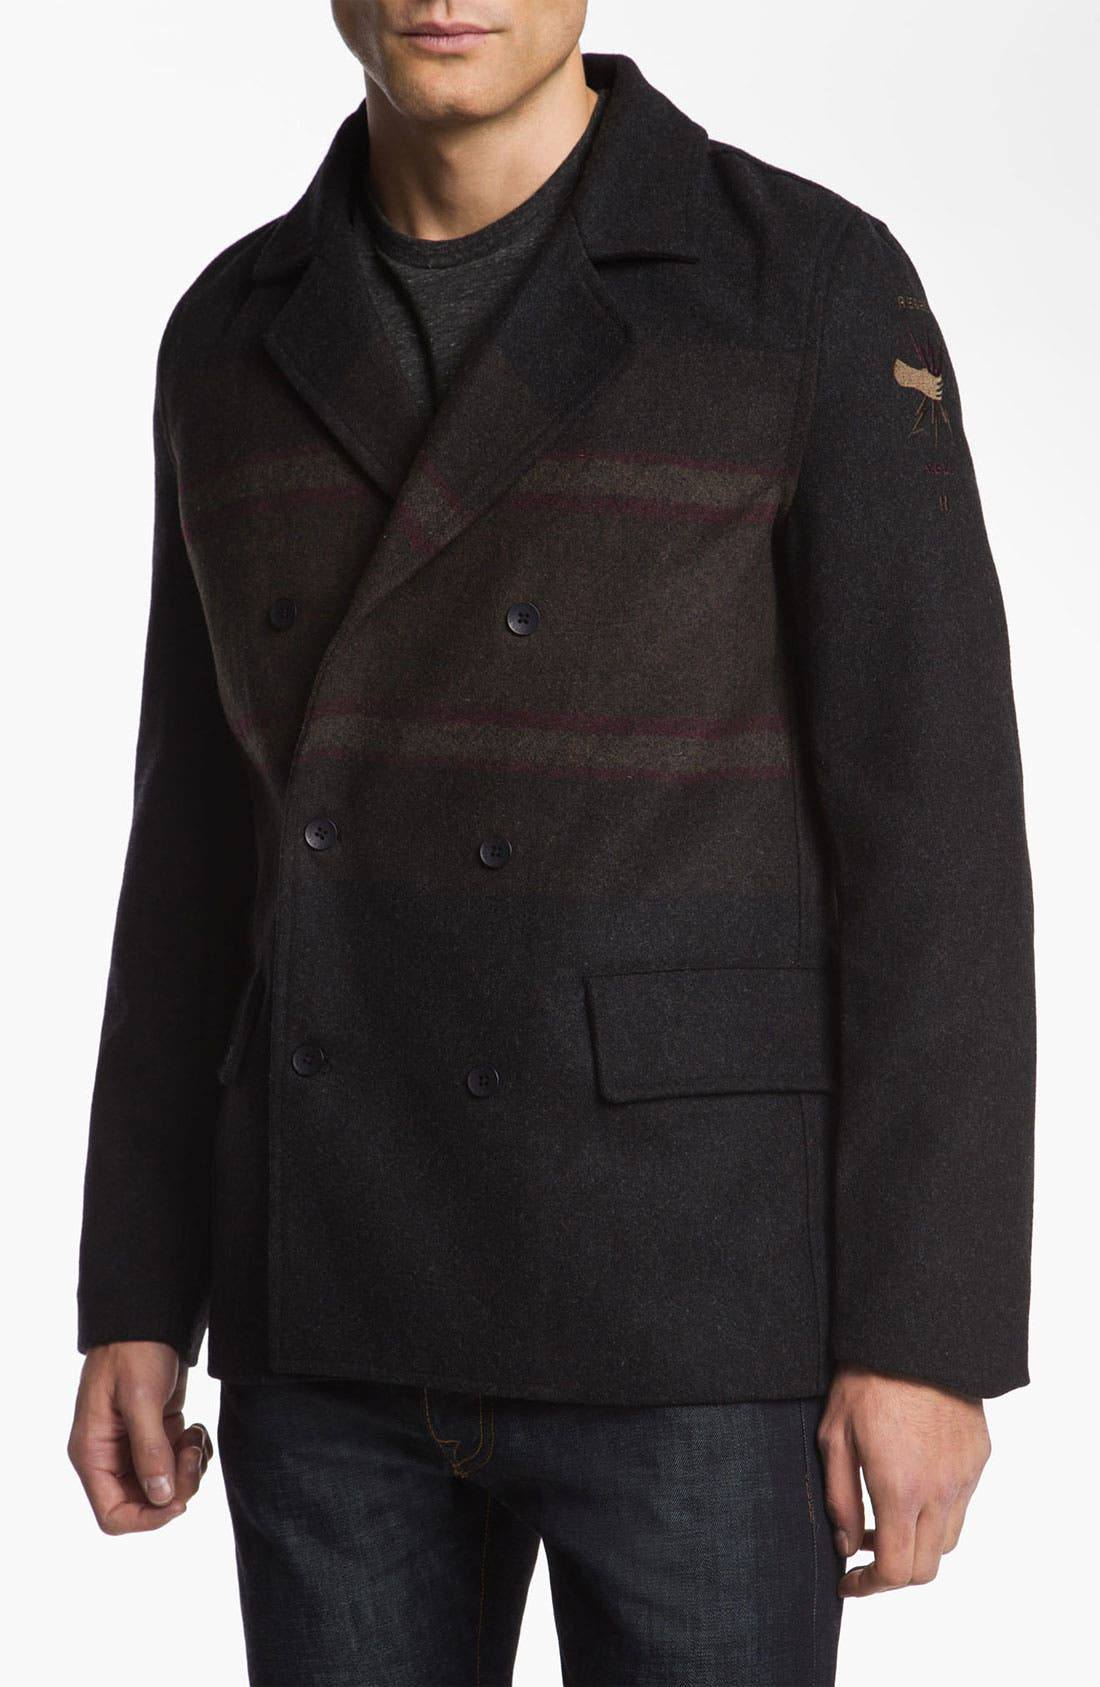 Alternate Image 1 Selected - Insight 'Downtown' Peacoat